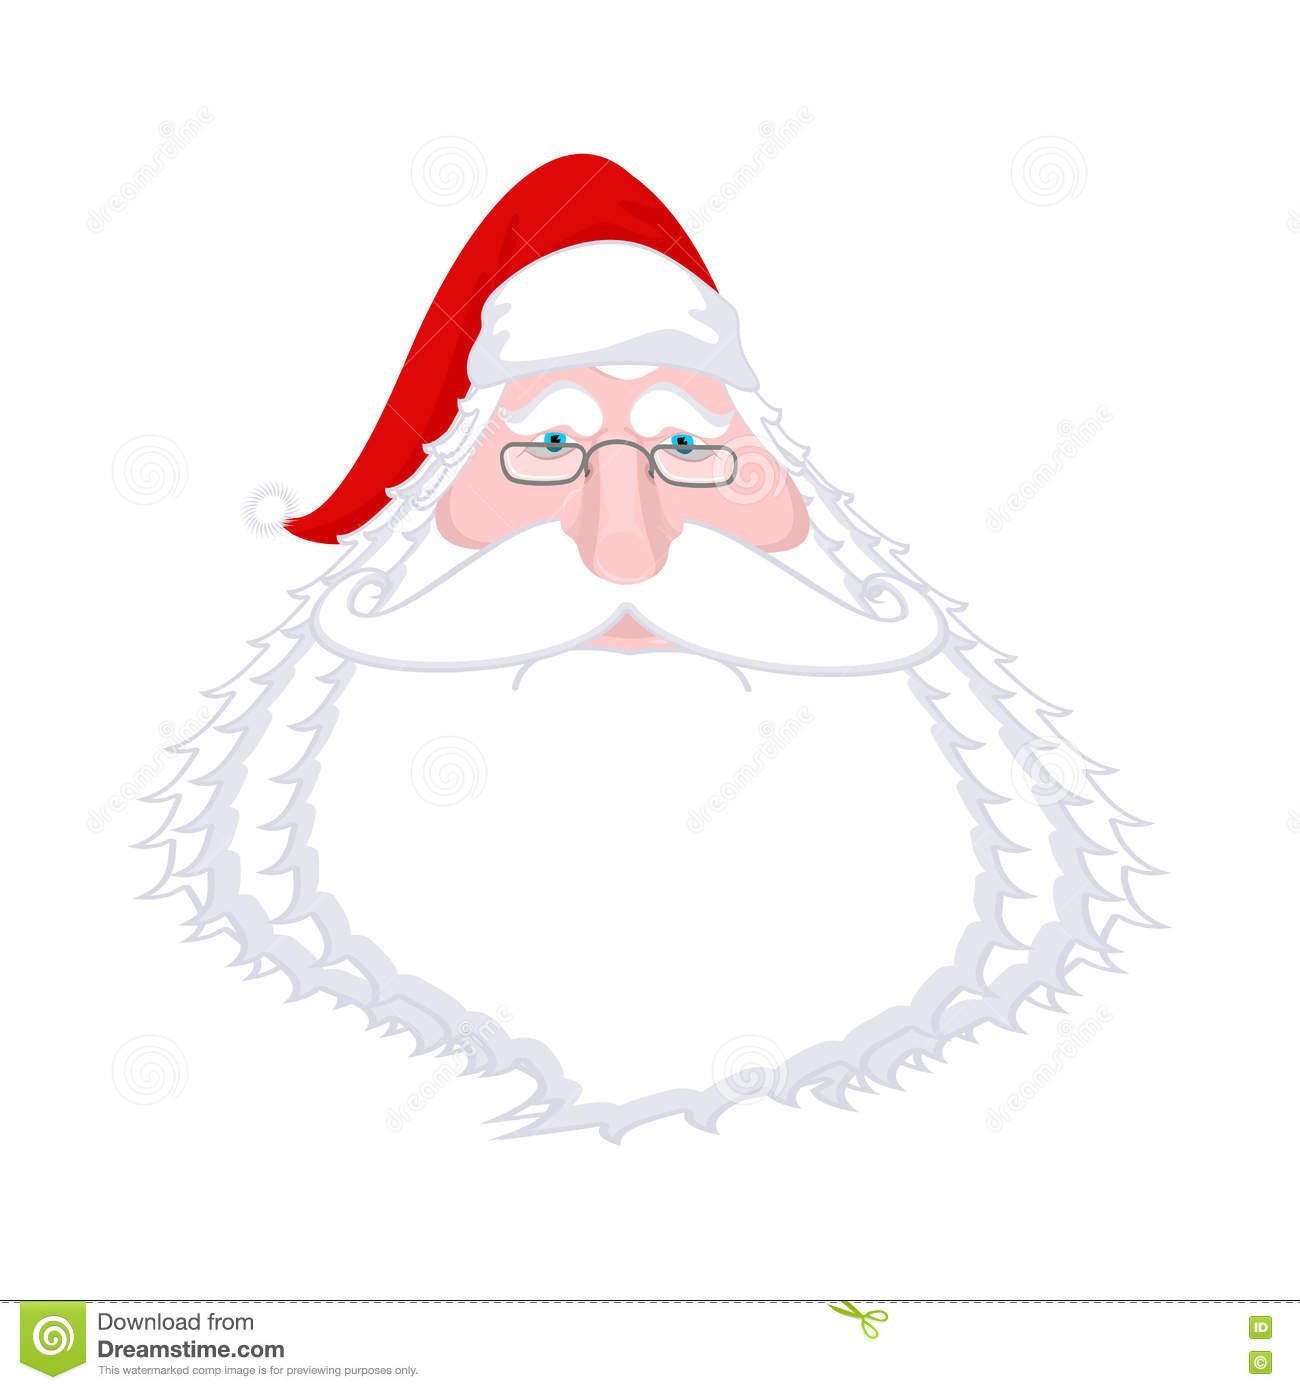 Santa claus face isolated christmas grandpa with white beard an santa claus face isolated christmas grandpa with white beard and red cap illustration for new year xmas template design maxwellsz